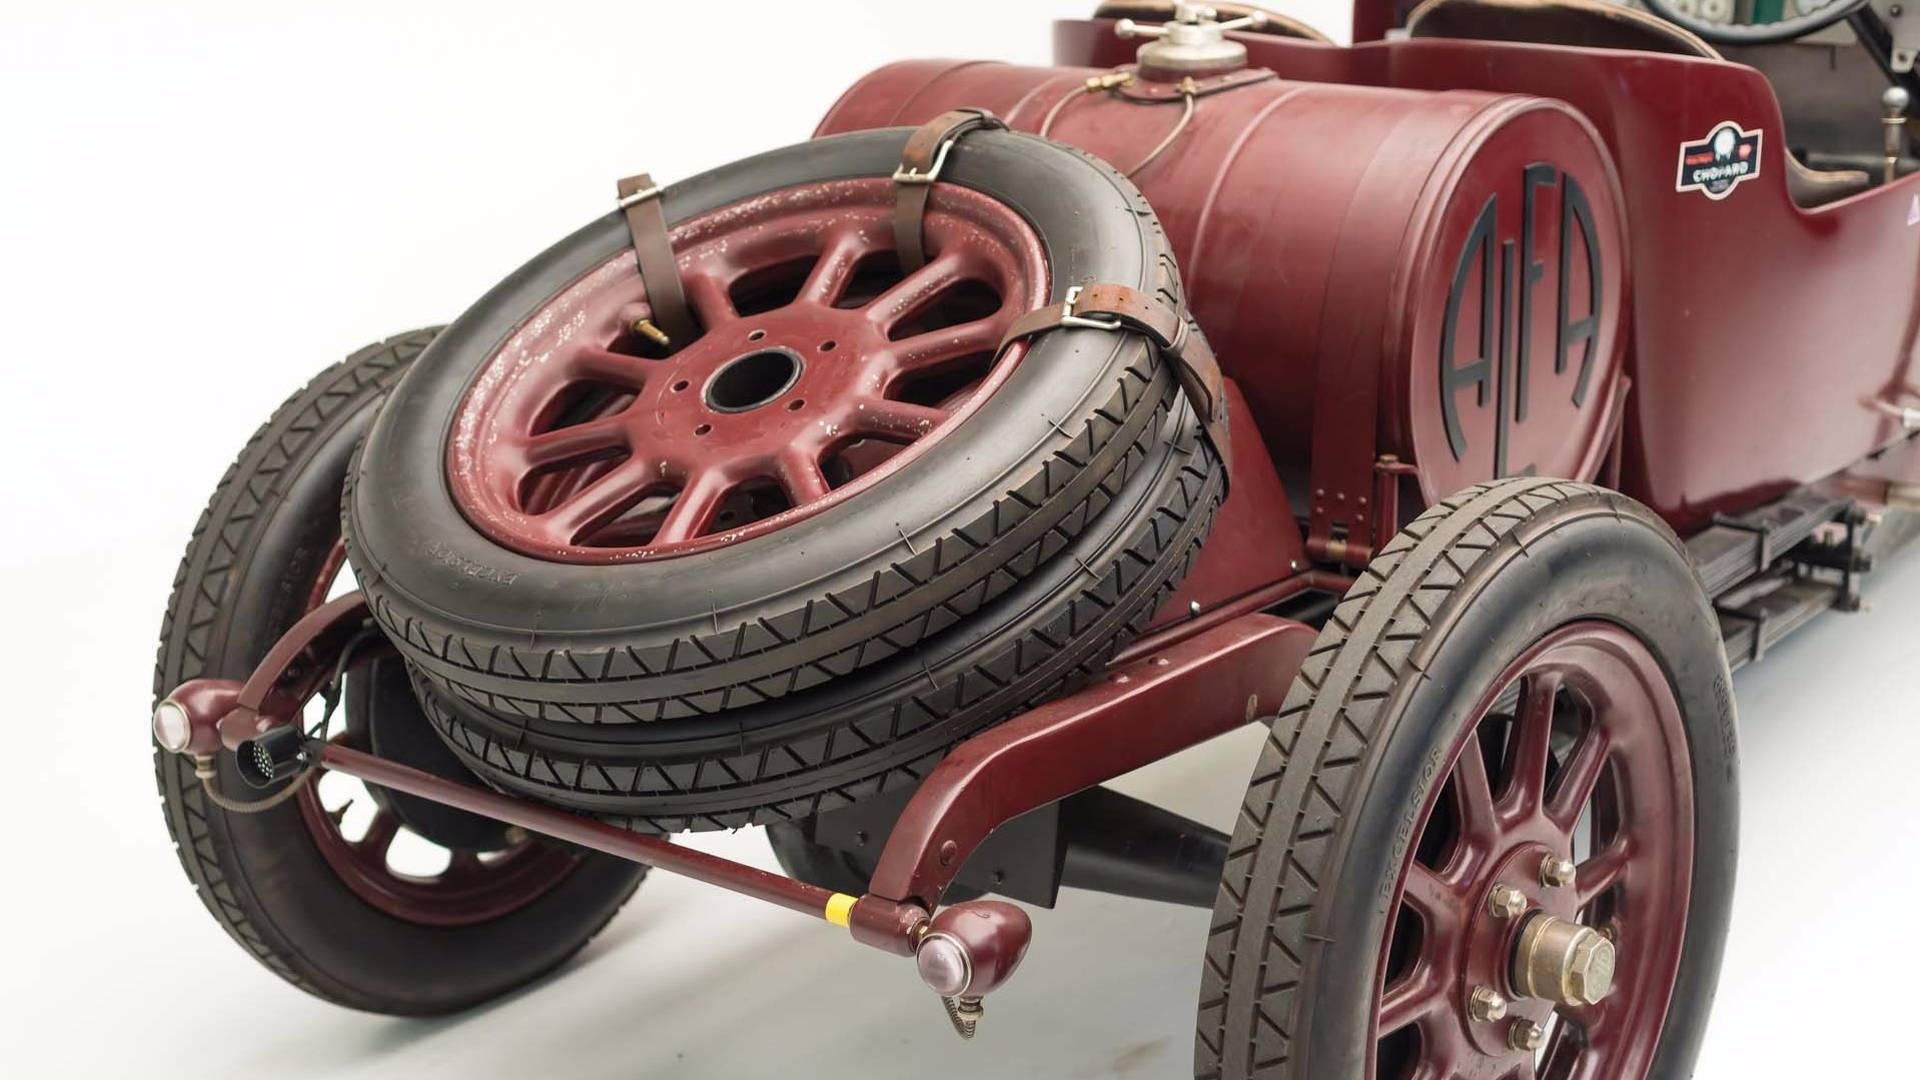 Alfa Romeo G1 1921 in auction (3)